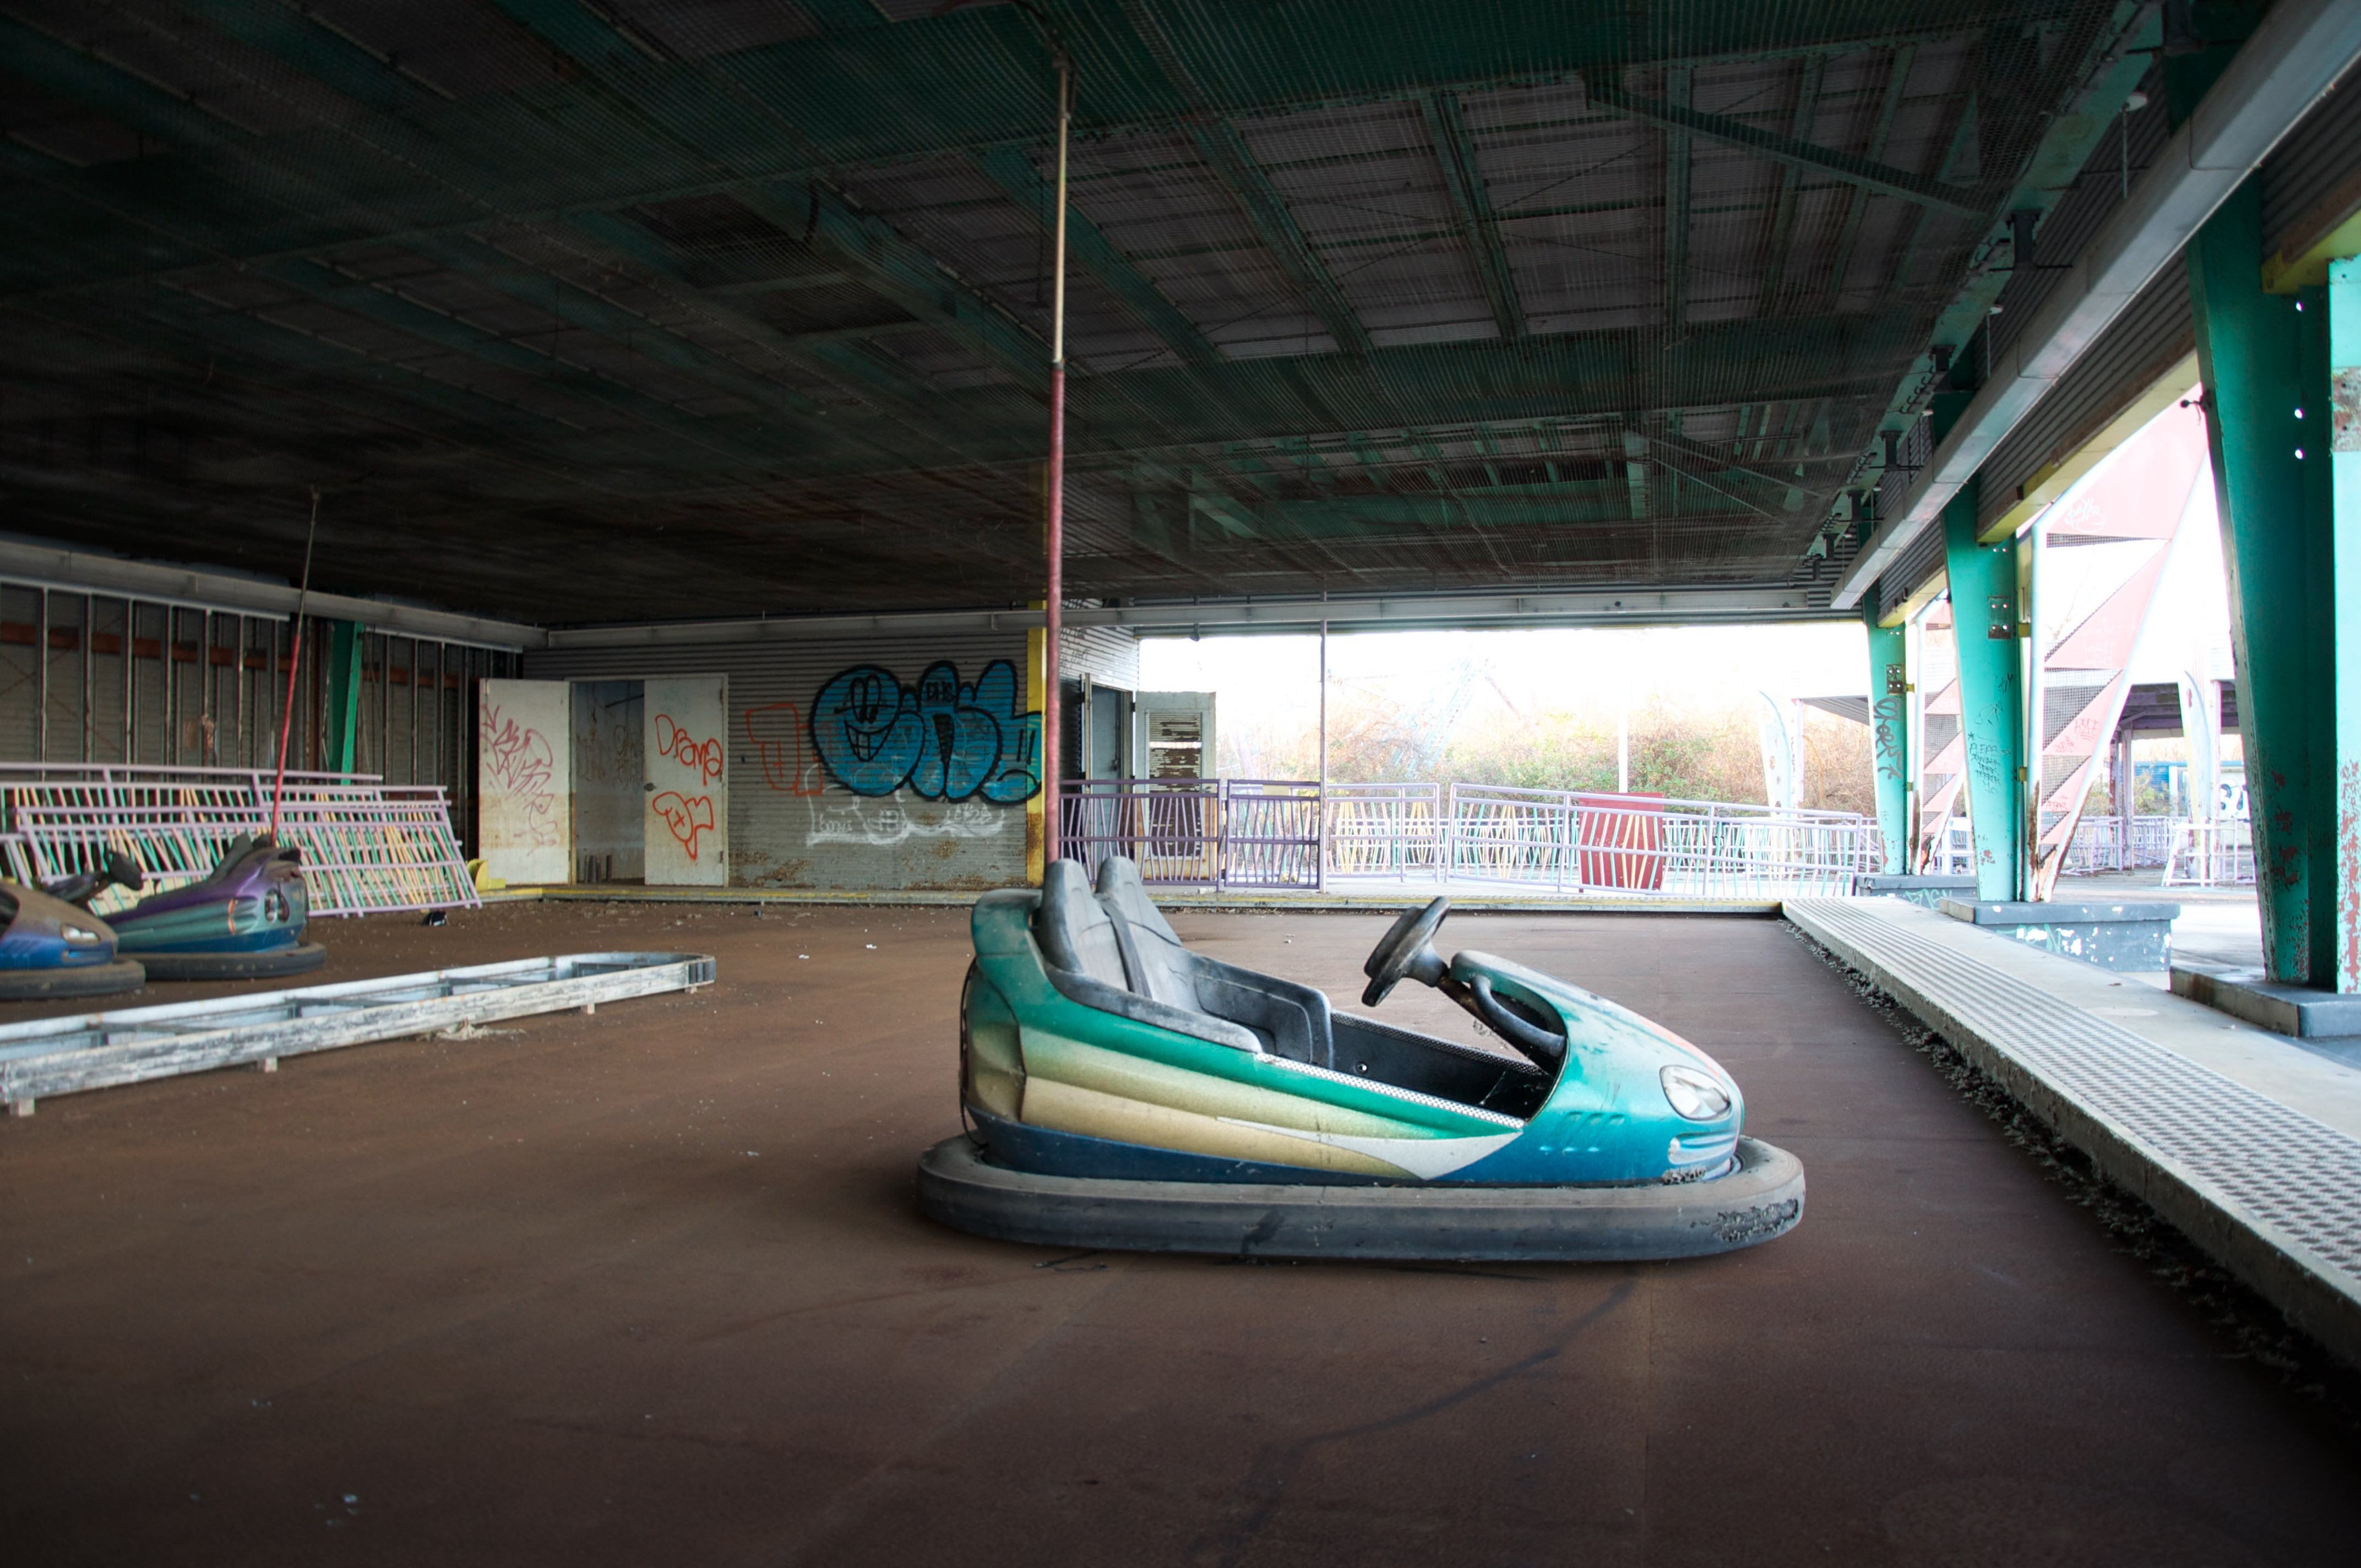 Eerie Images of America's Abandoned Amusement Parks Will Haunt You